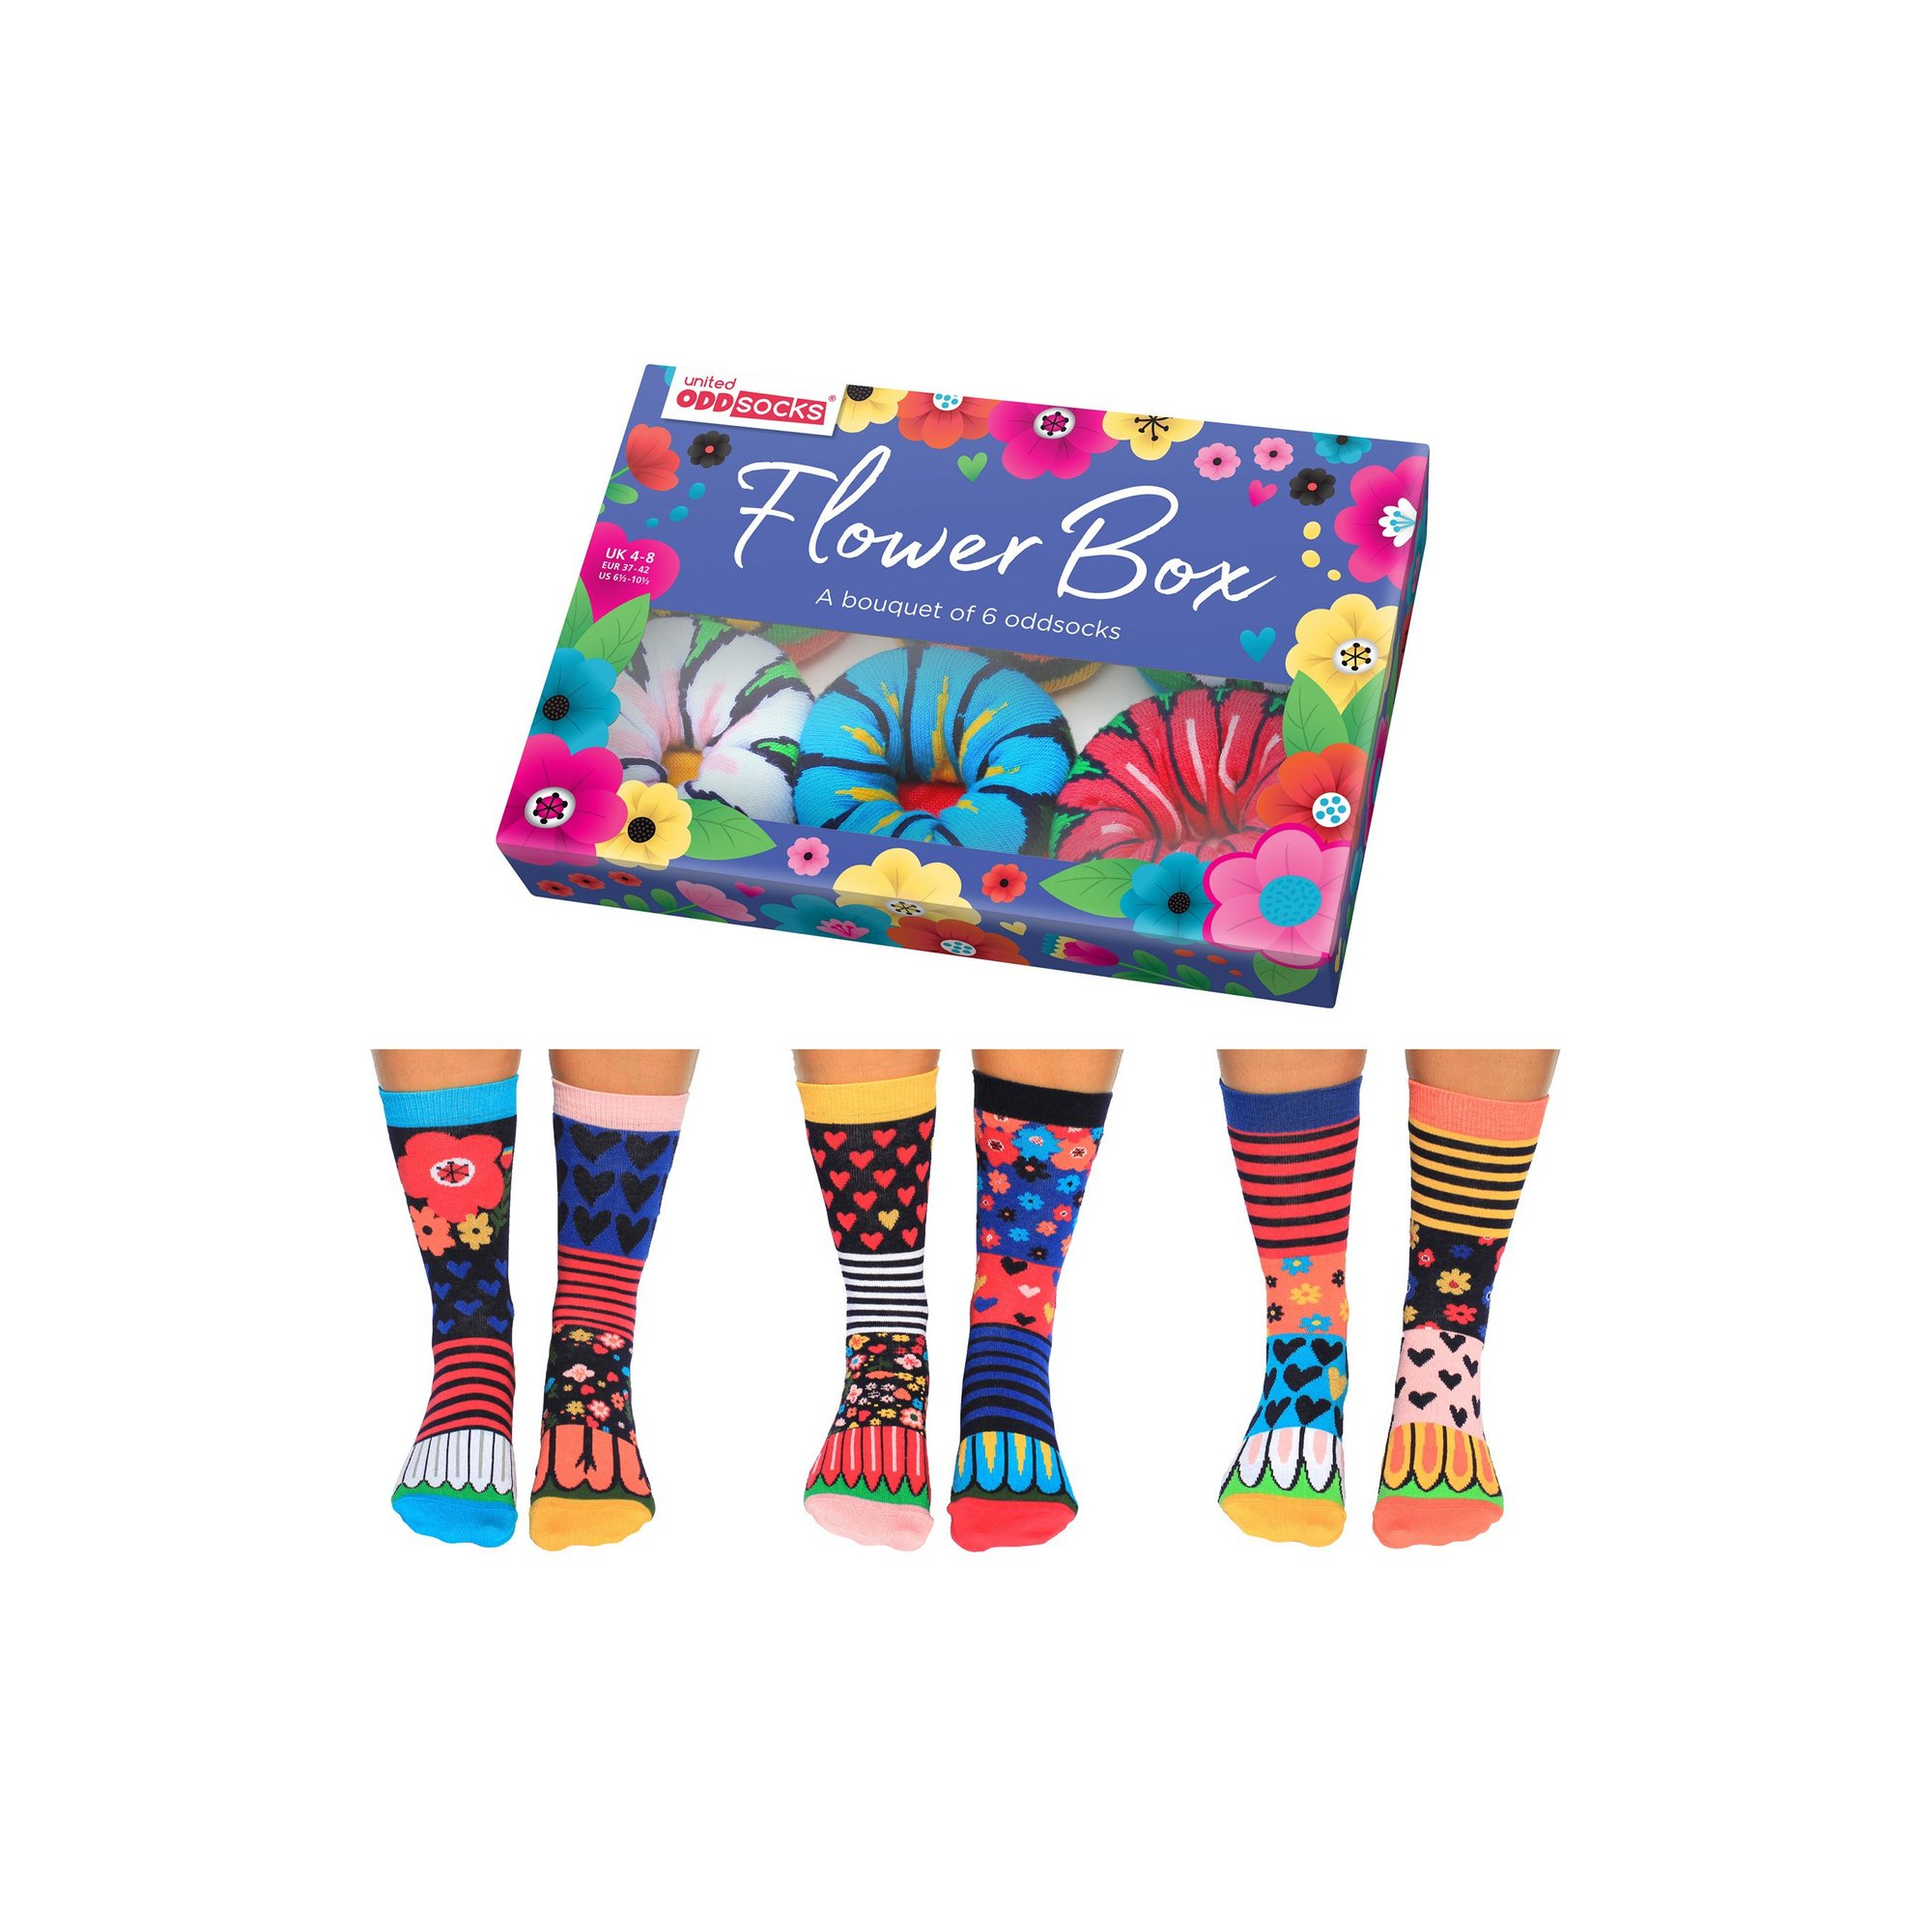 Image of Flowerbox A Bouquet of 6 Oddsocks